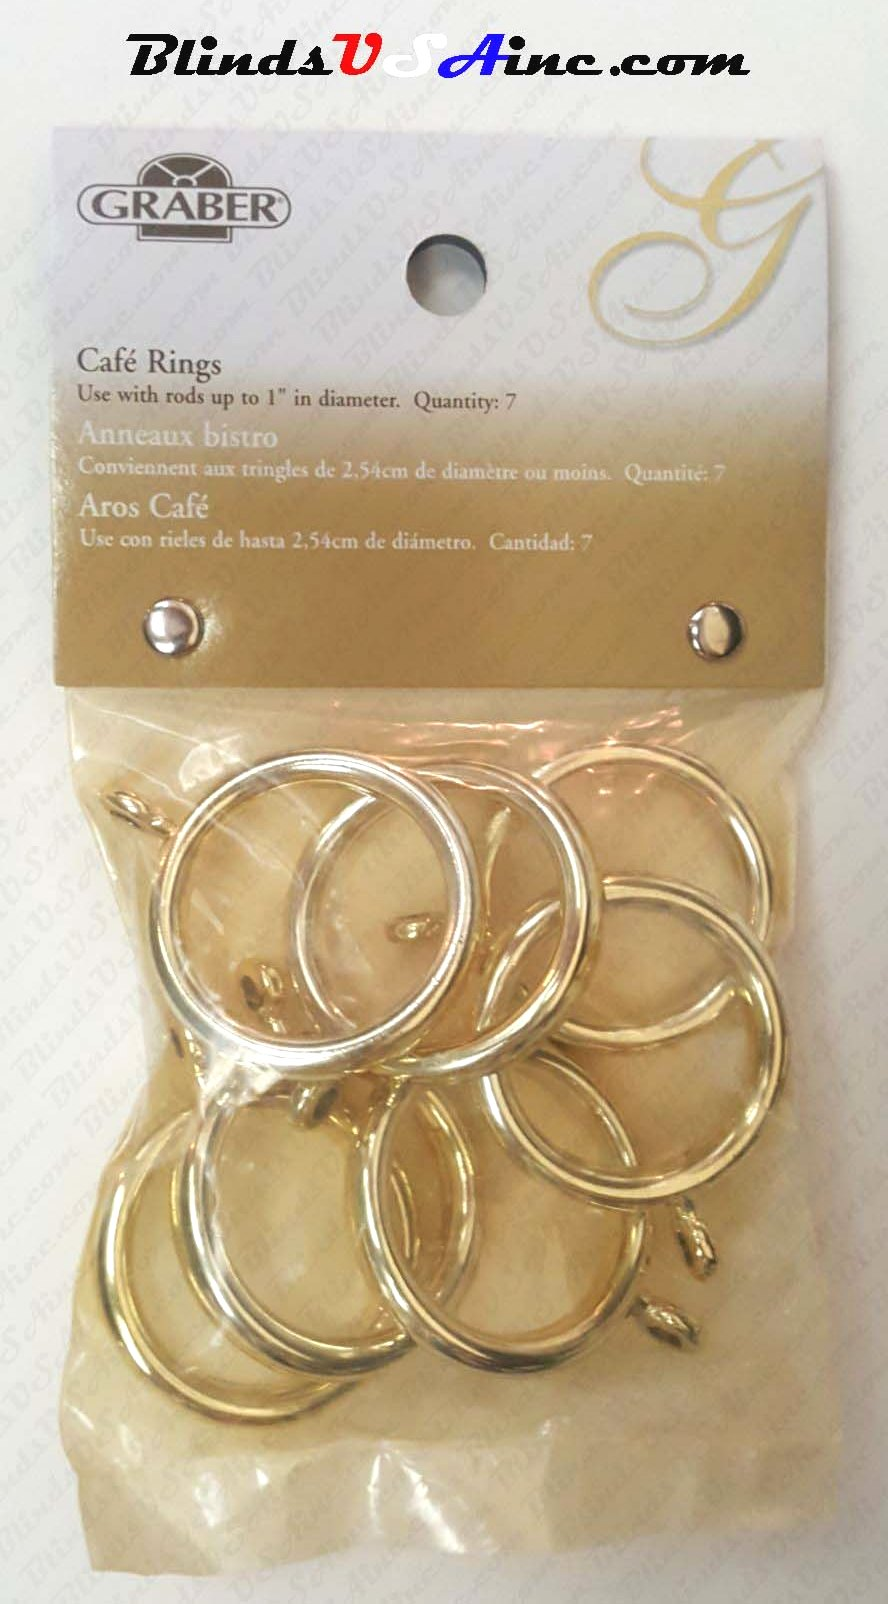 "Graber 1"" Cafe' Rings with Eyelet, finish brass, pack of 7, Part # 5-820-8"